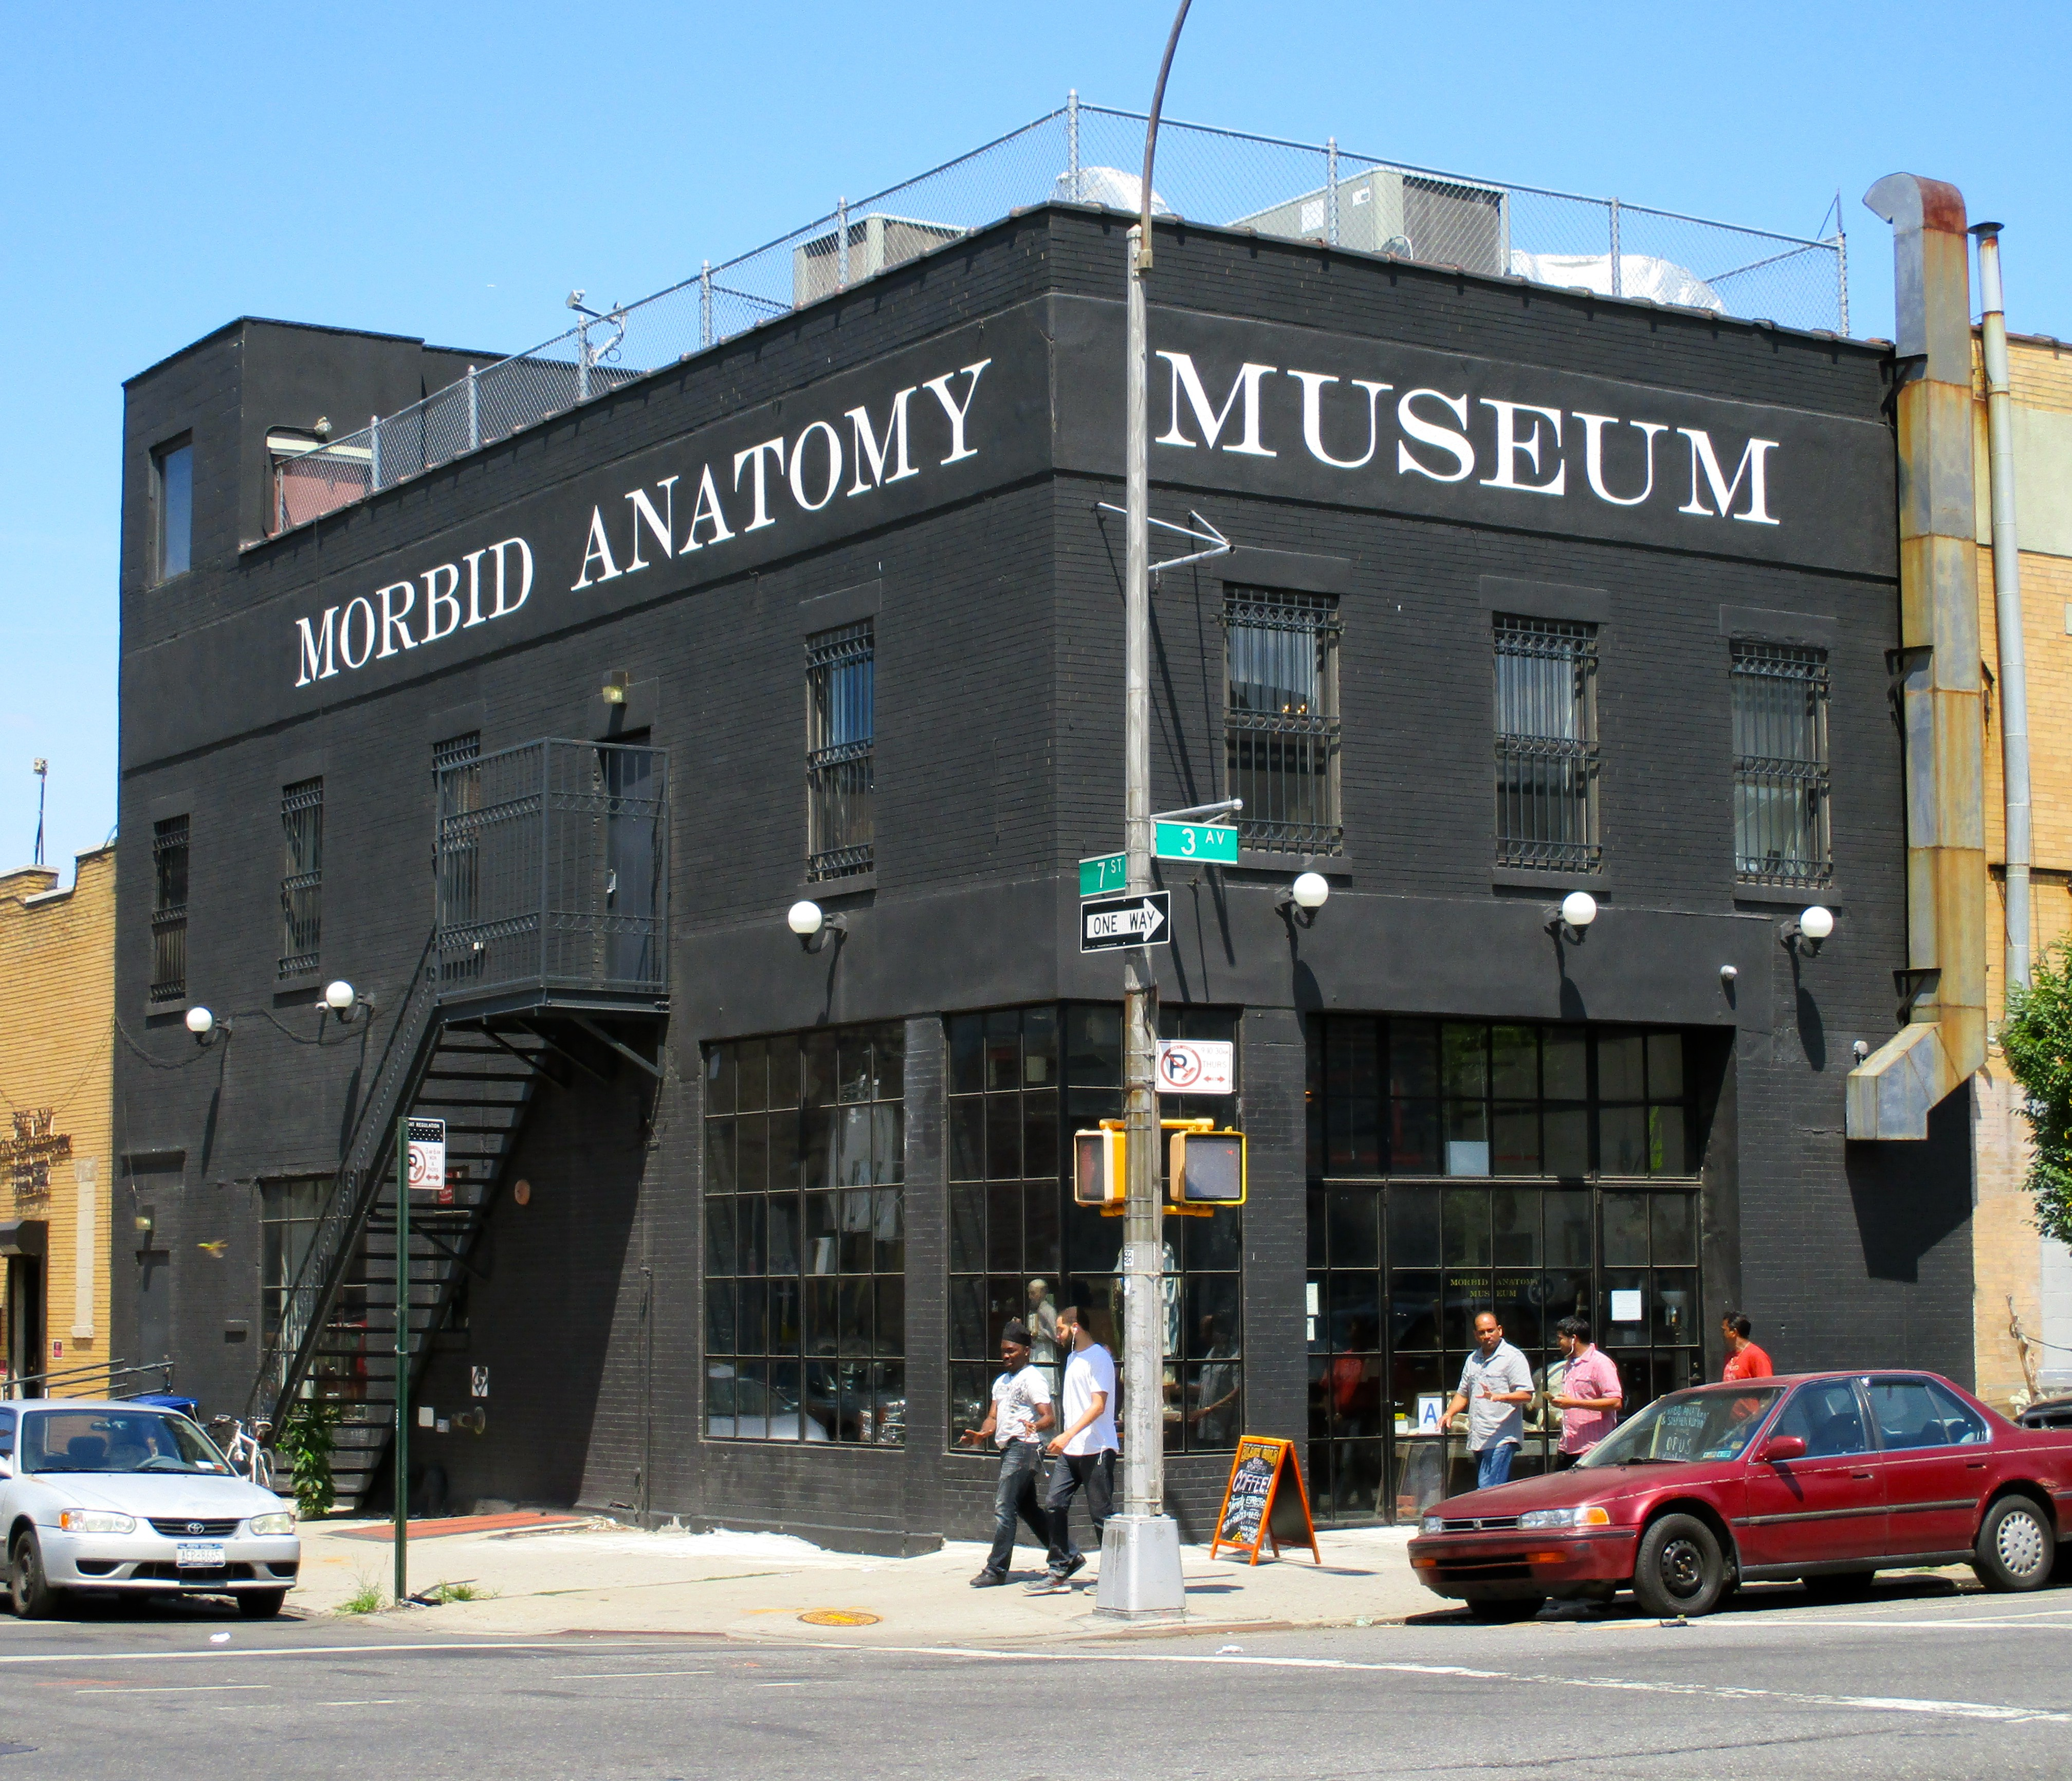 Stephen Romano Presents Opus Hypnagogia at the Morbid Anatomy Museum ...